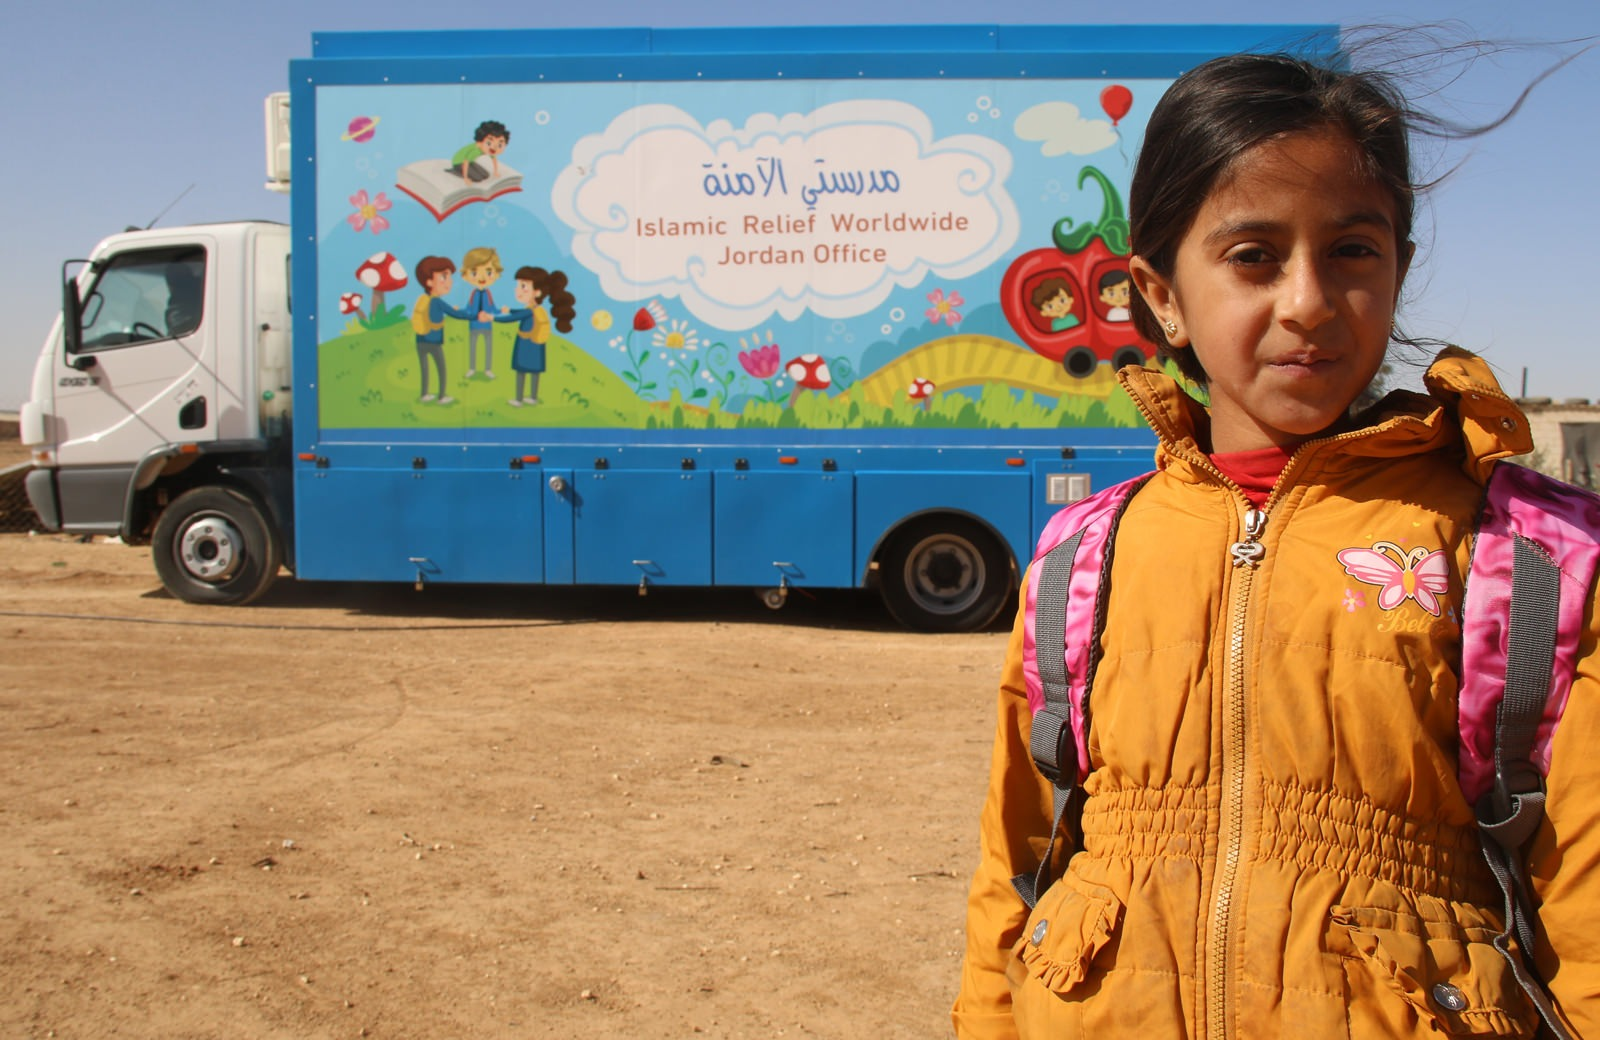 Hanaa and the Islamic Relief mobile education bus in Jordan, providing education for hundreds of children in need